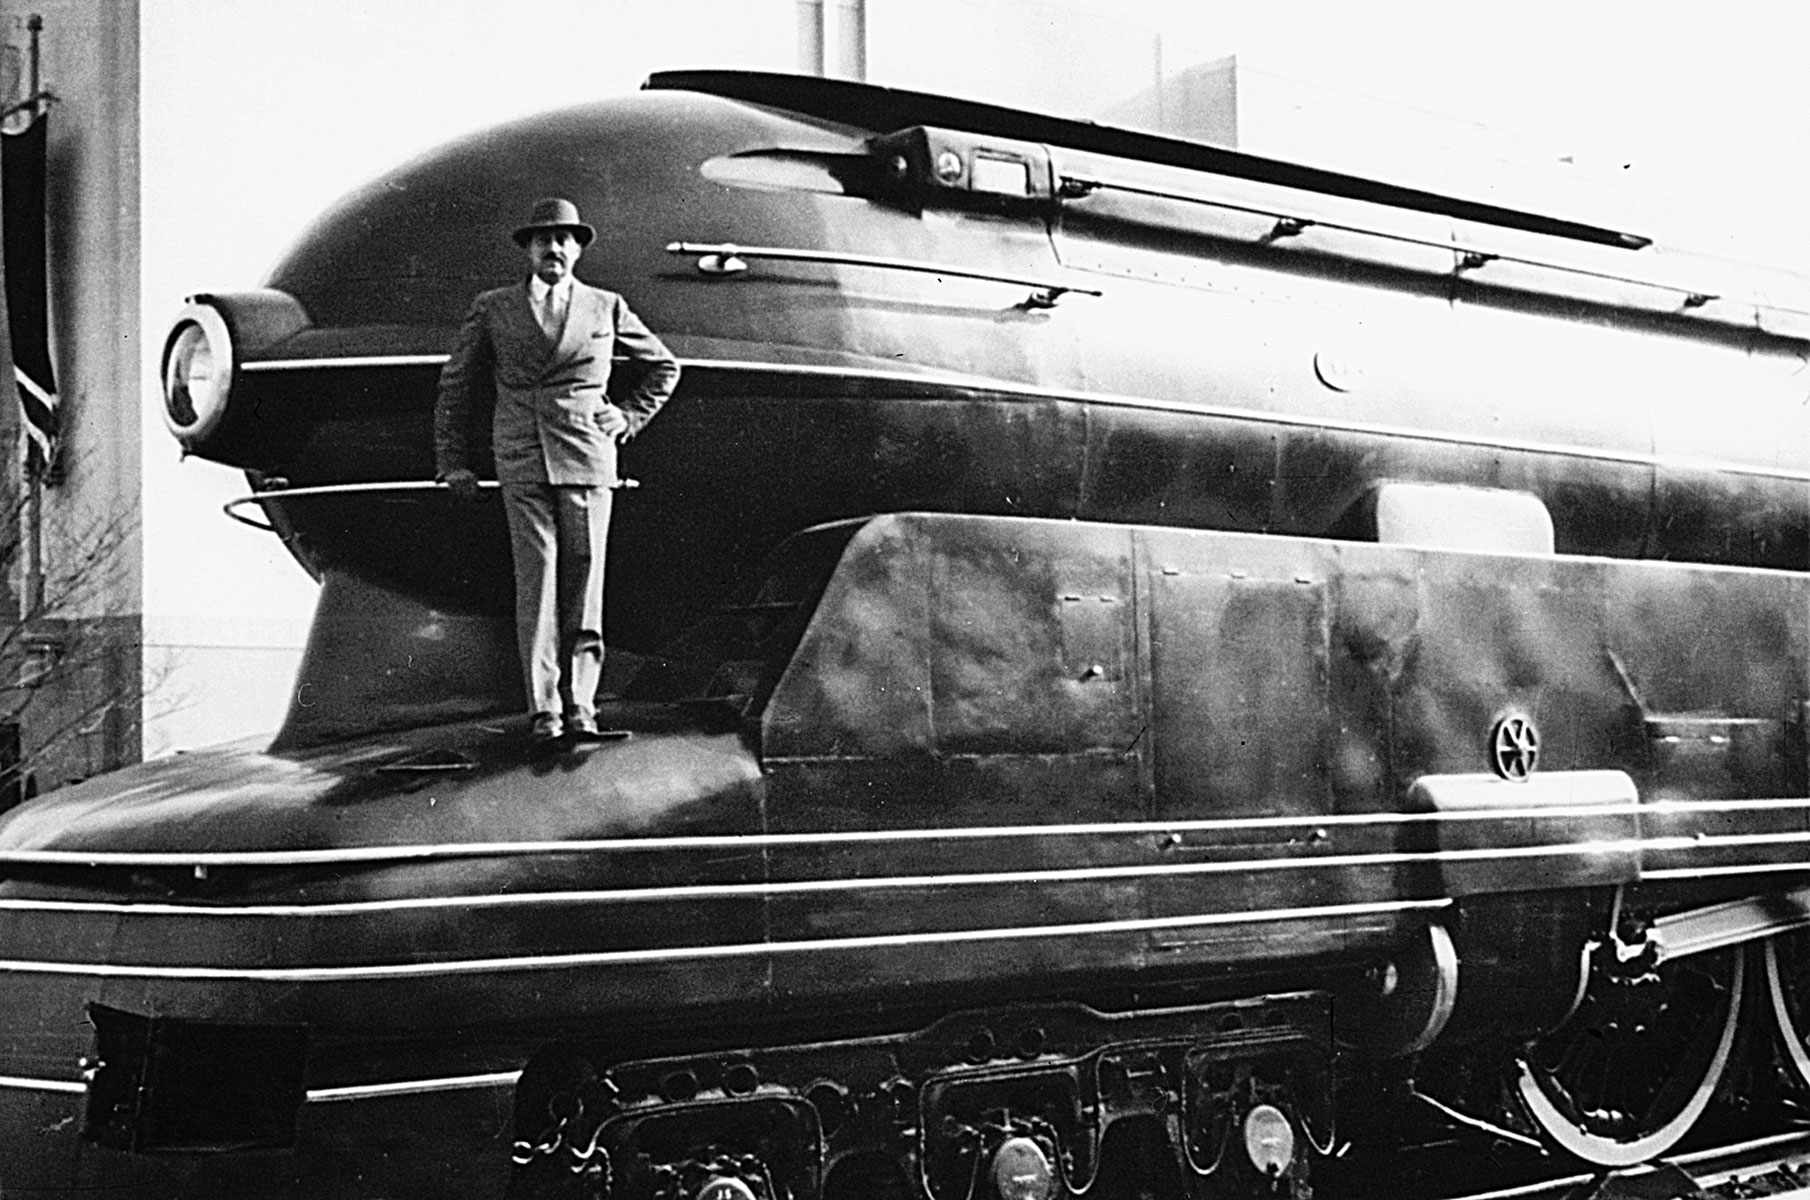 Raymond Loewy y su flamante Pennsylvania Railroad's S1 steam locomotive